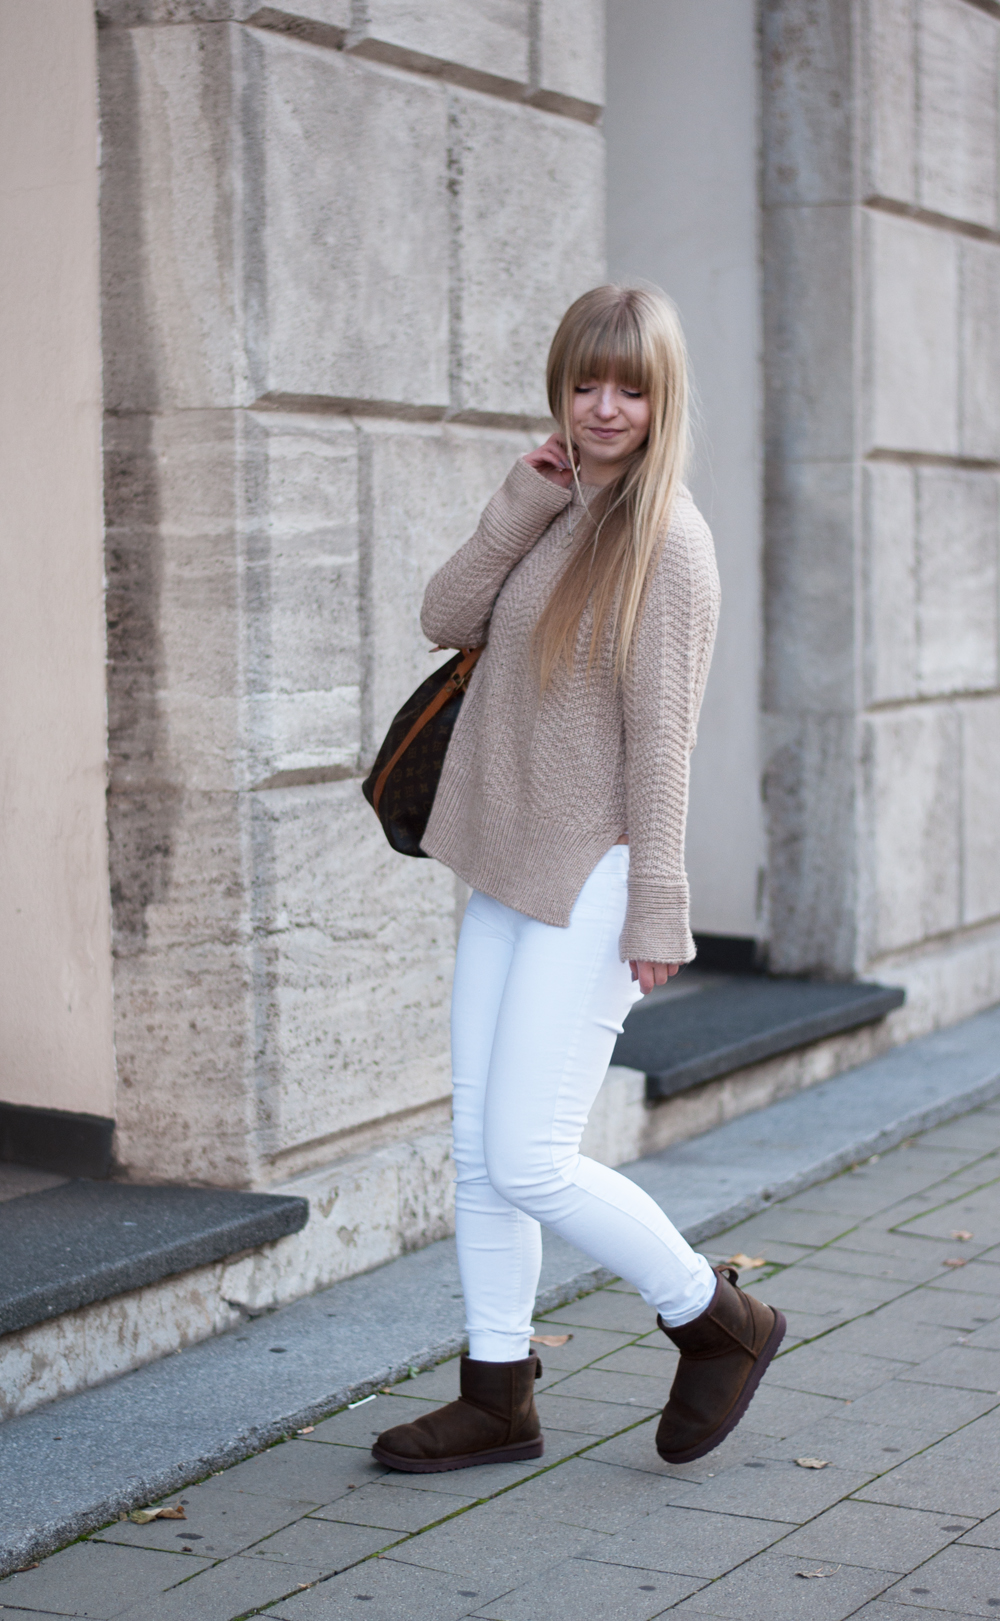 winter-outfit-cozy-look-fashionblogger-modeblog-knitwear-ugg-boots-camel-beige-louisvuitton-sac-noe-ootd-duisburg-nrw-4